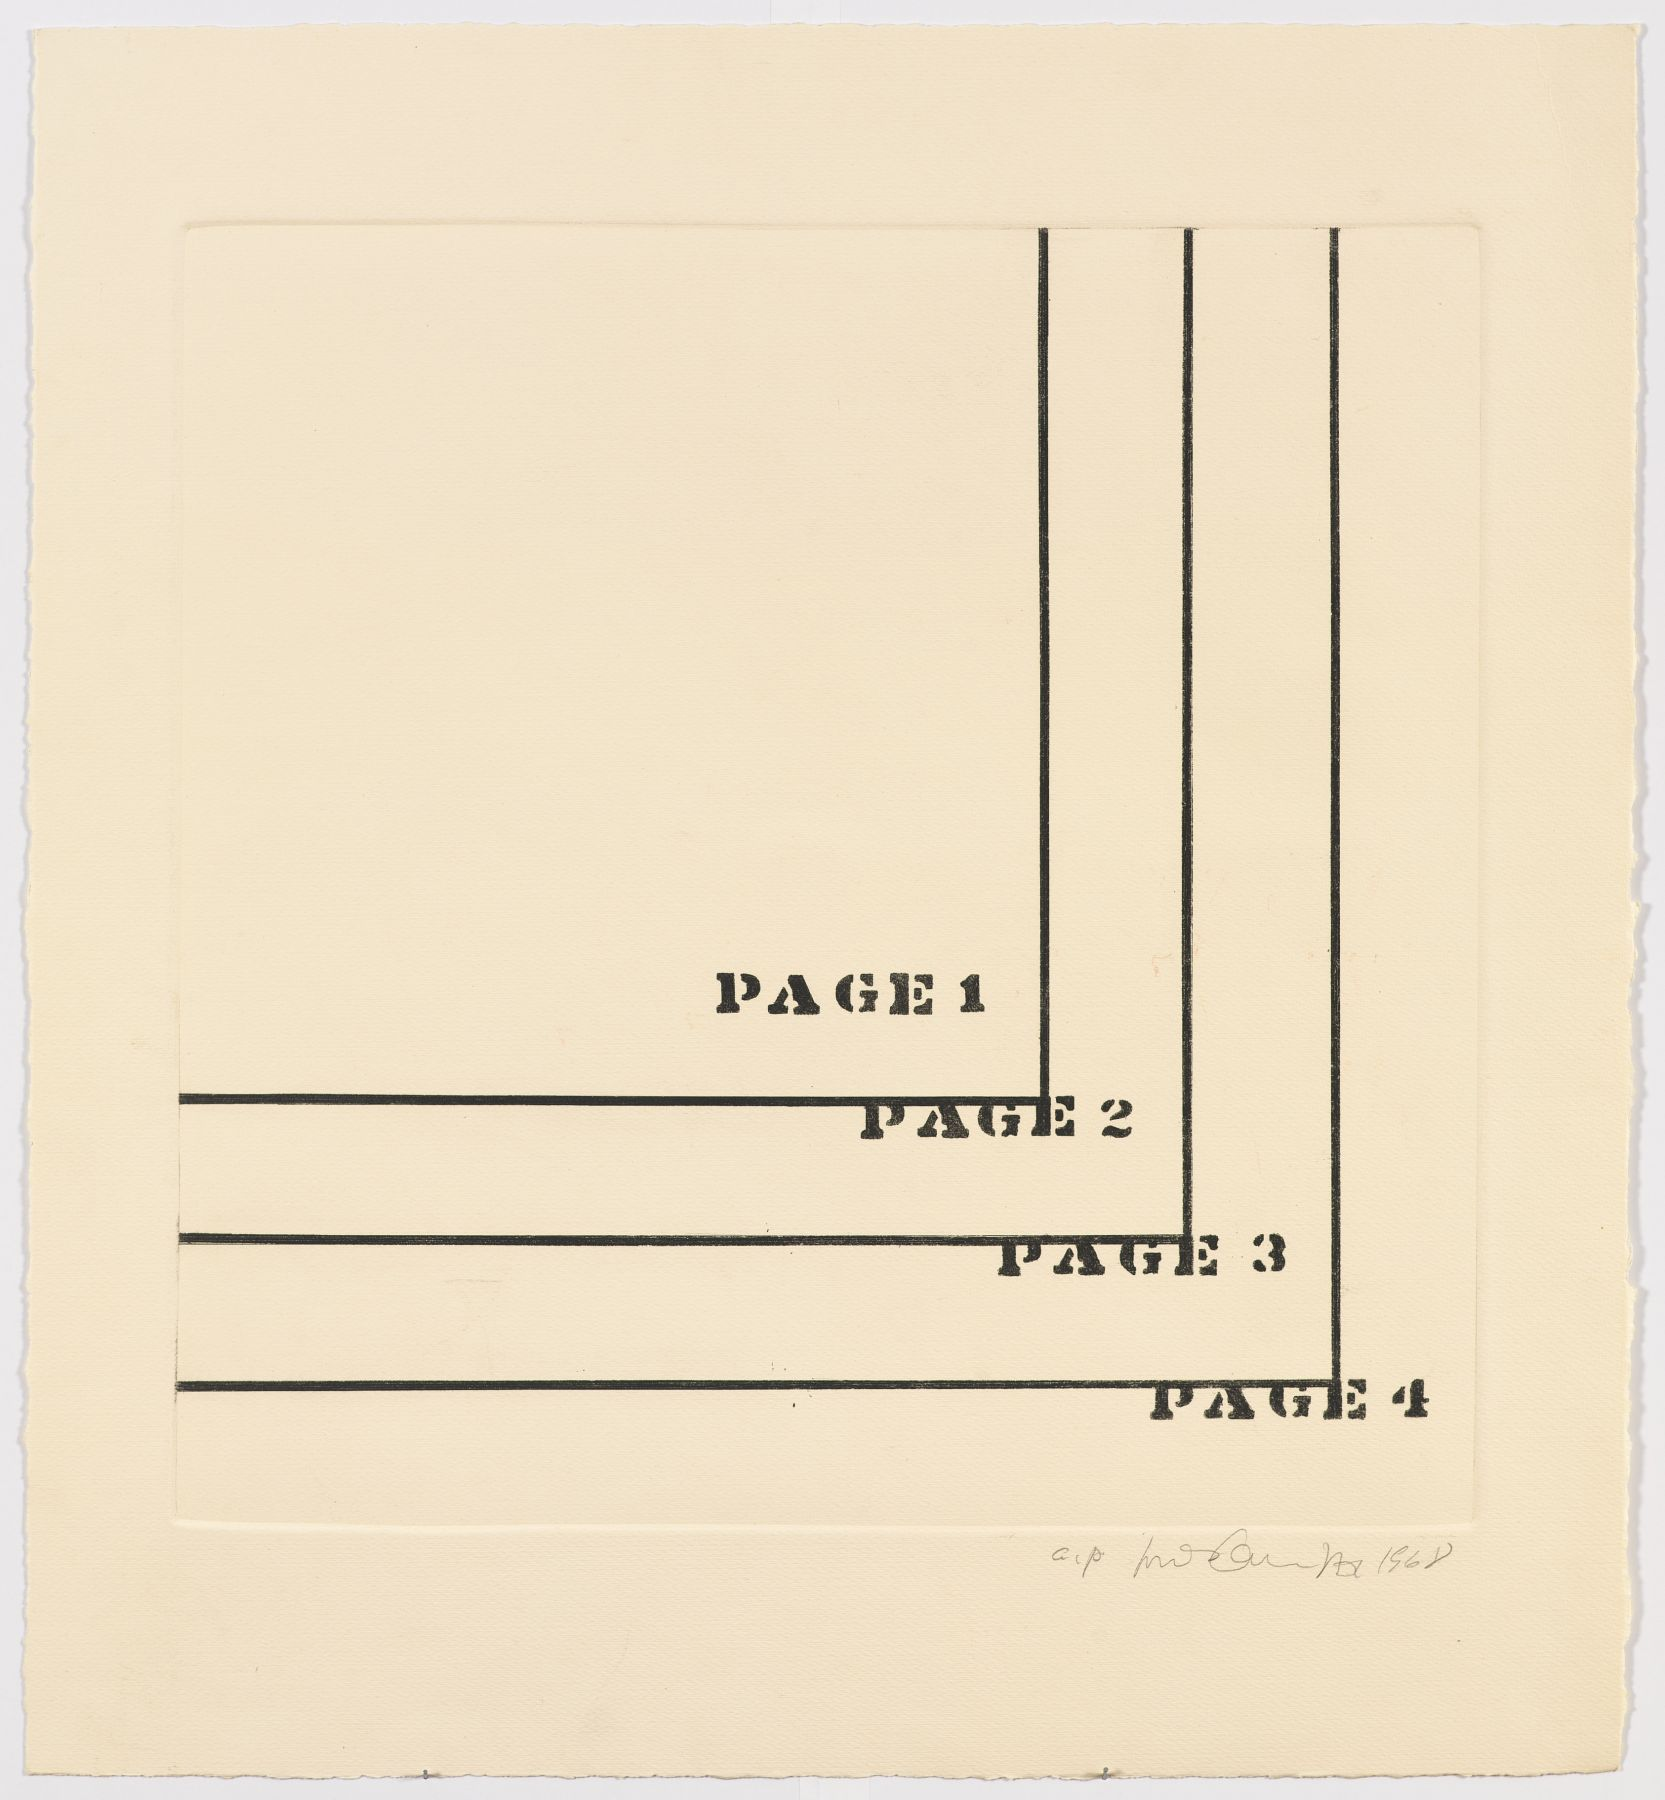 Luis Camnitzer, Four Pages, 1968